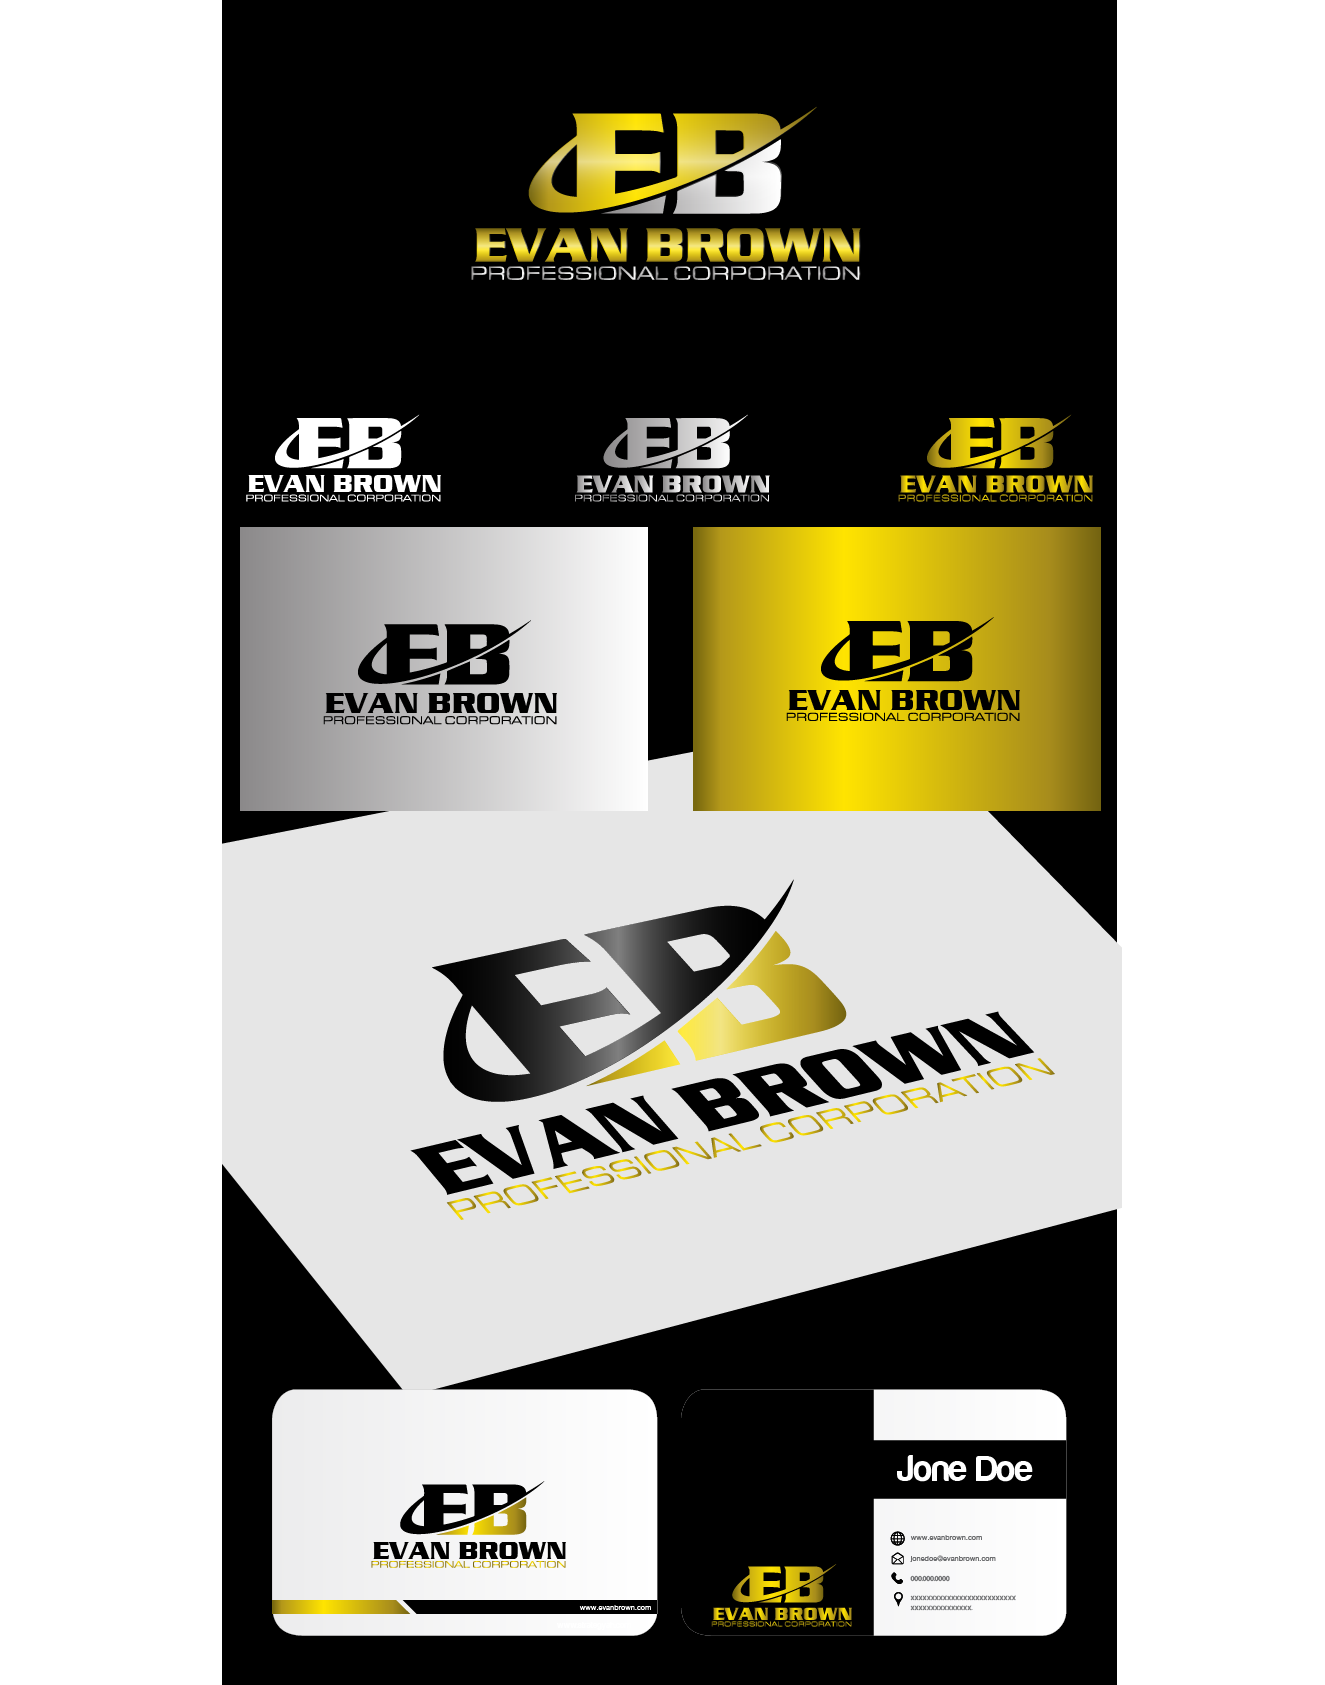 Logo Design by Private User - Entry No. 181 in the Logo Design Contest Inspiring Logo Design for Evan Brown Professional Corporation.